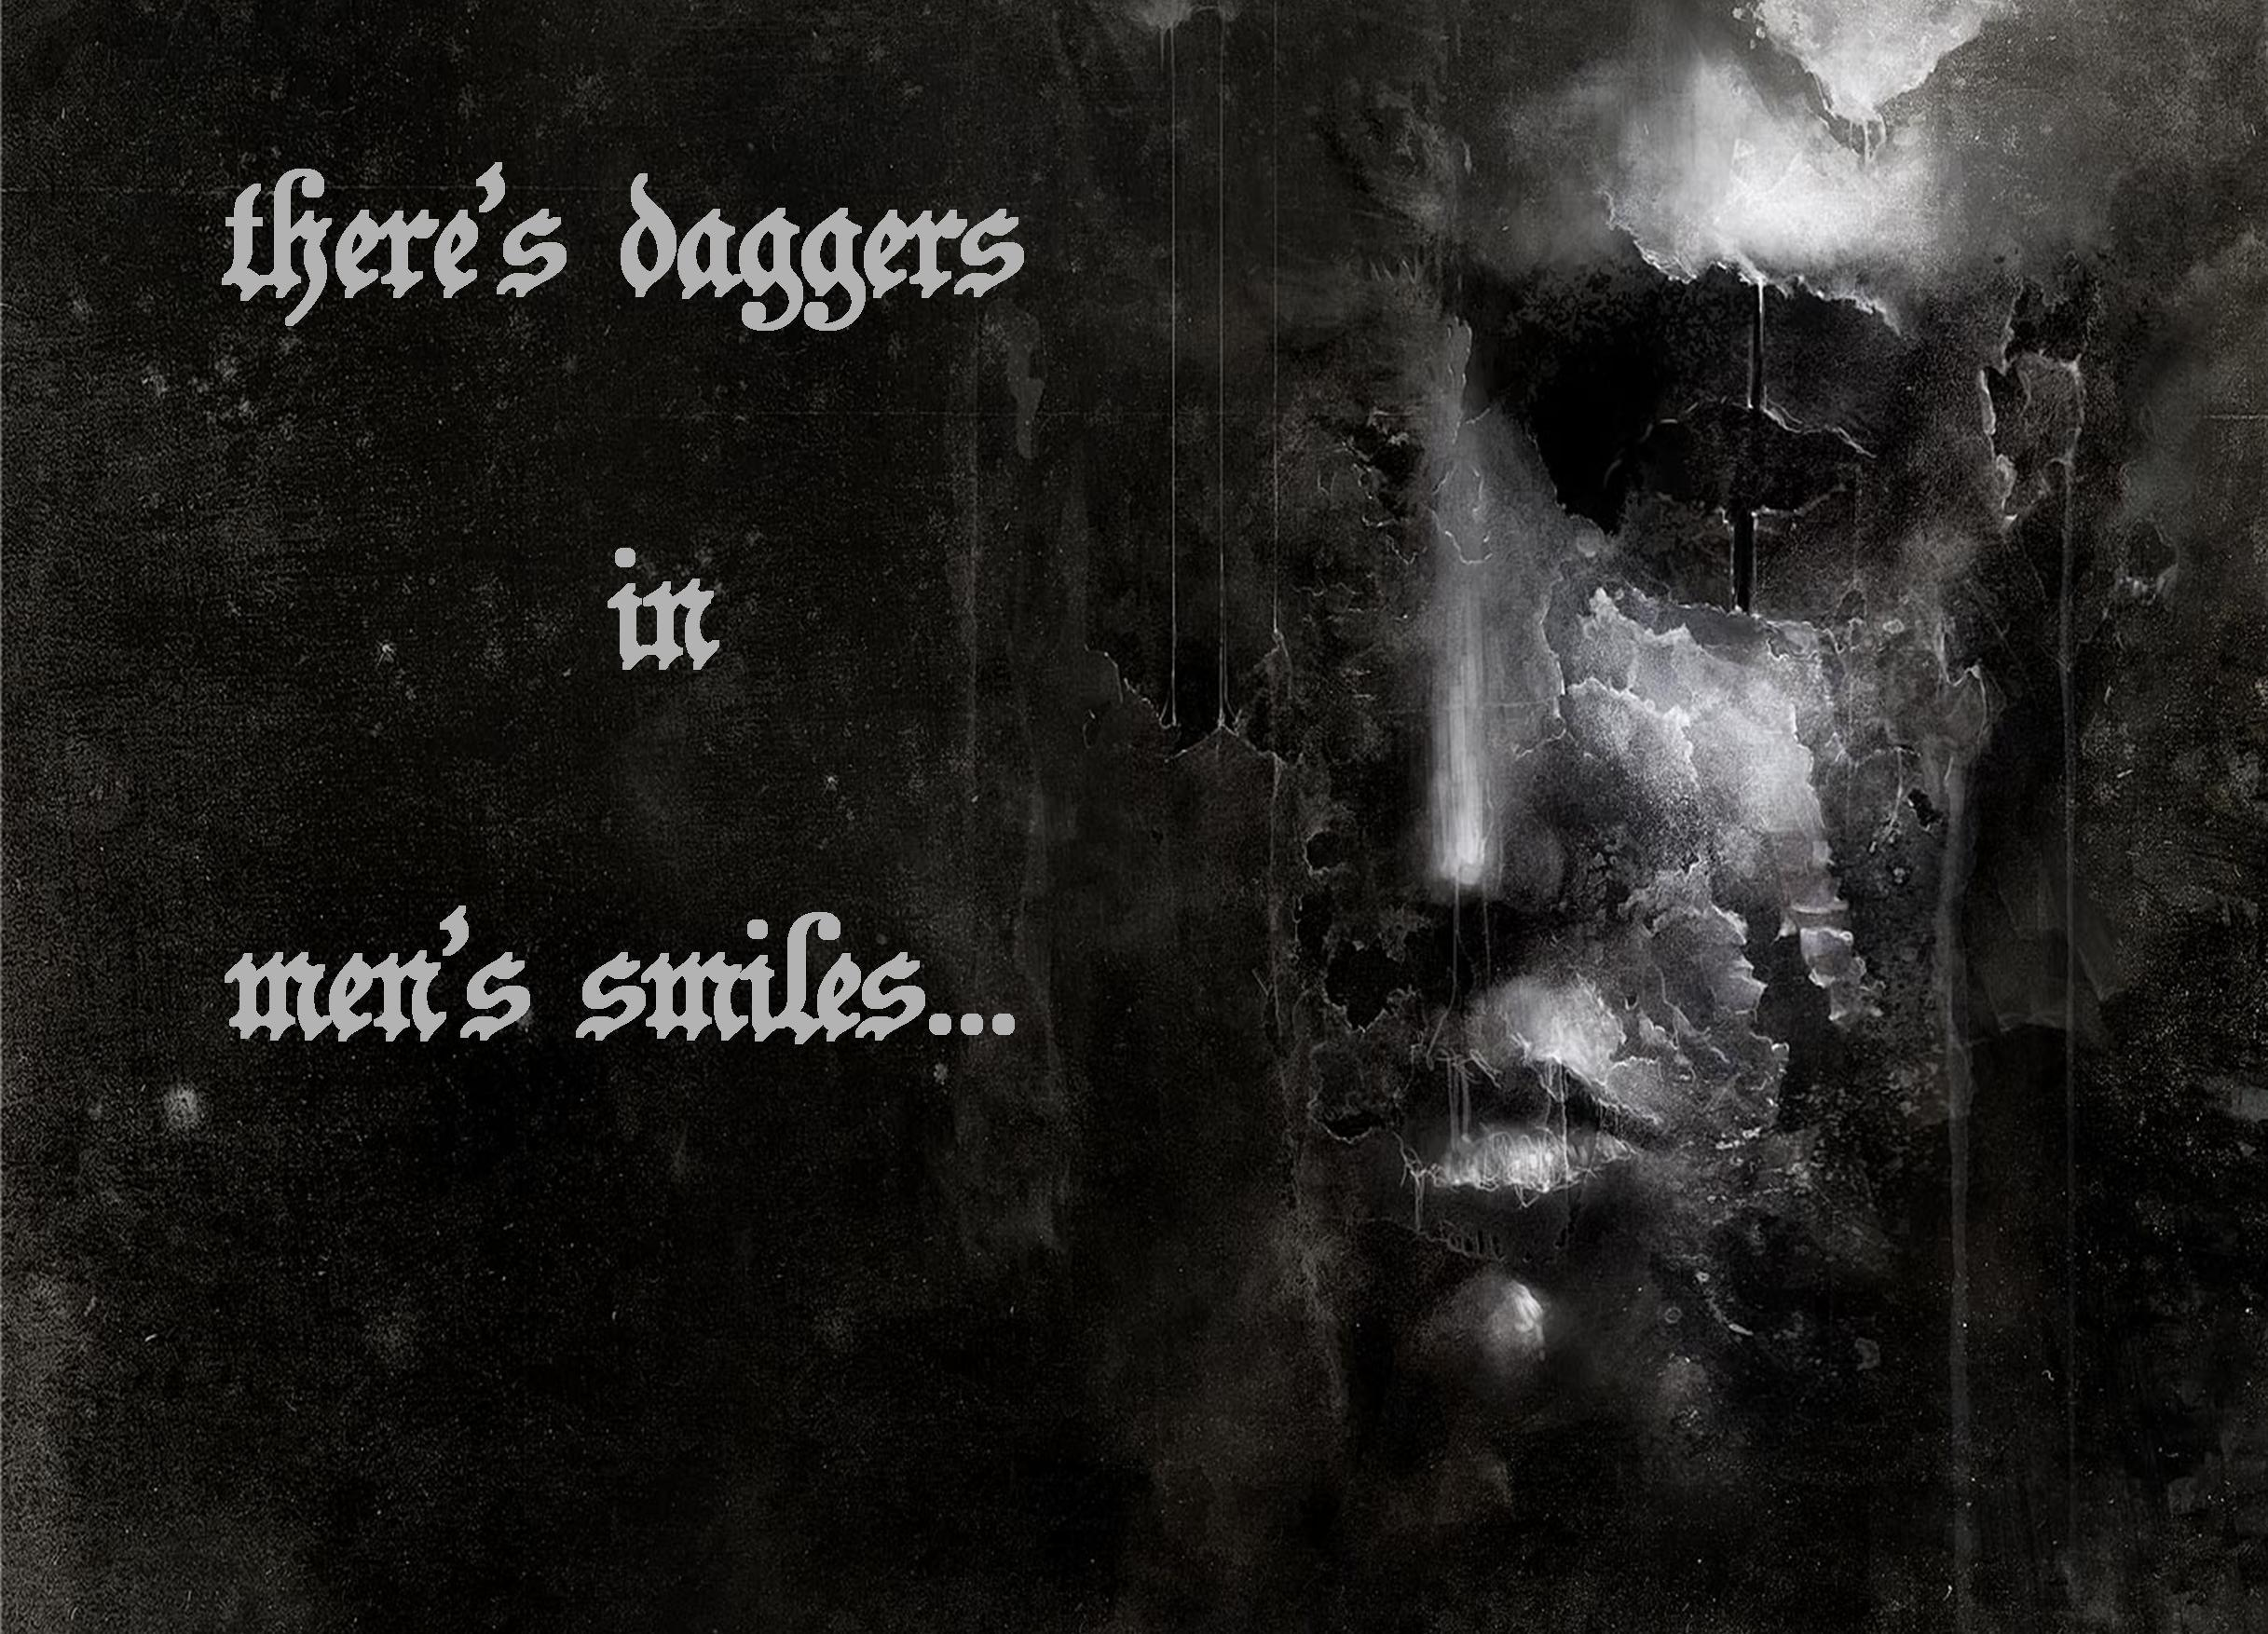 The Vemodalen Minstrels releases their new single 'There's Daggers in Men's Smiles'